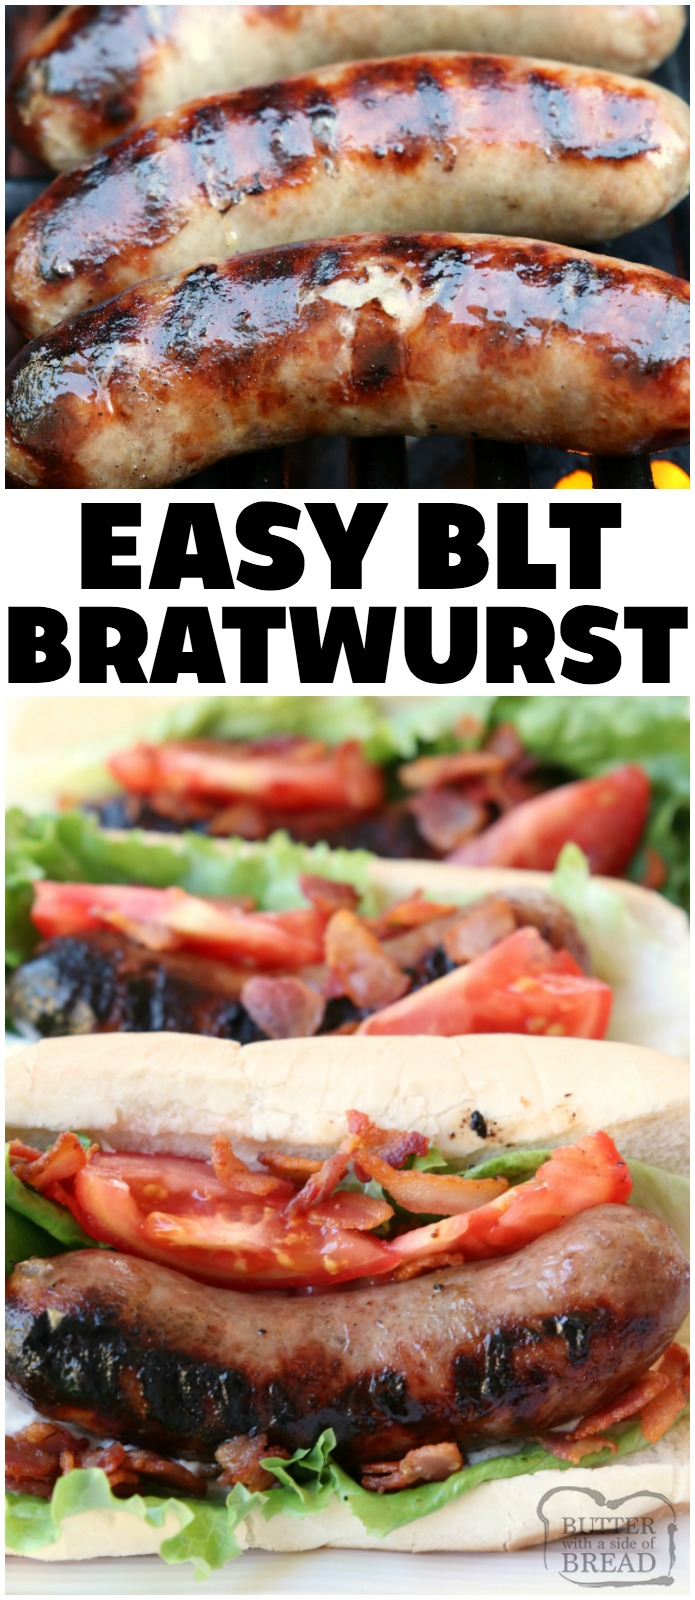 BLT Bratwurst recipe made easy with grilled bratwurst sausages topped with leaf lettuce, fresh tomatoes and bacon. Perfect bratwurst recipe for when you want a delicious, flavorful dinner on the table fast! #bratwurst #BLT #sausage #grilling #grill #meat #dinner #BBQ #recipe from Butter With A Side of Bread